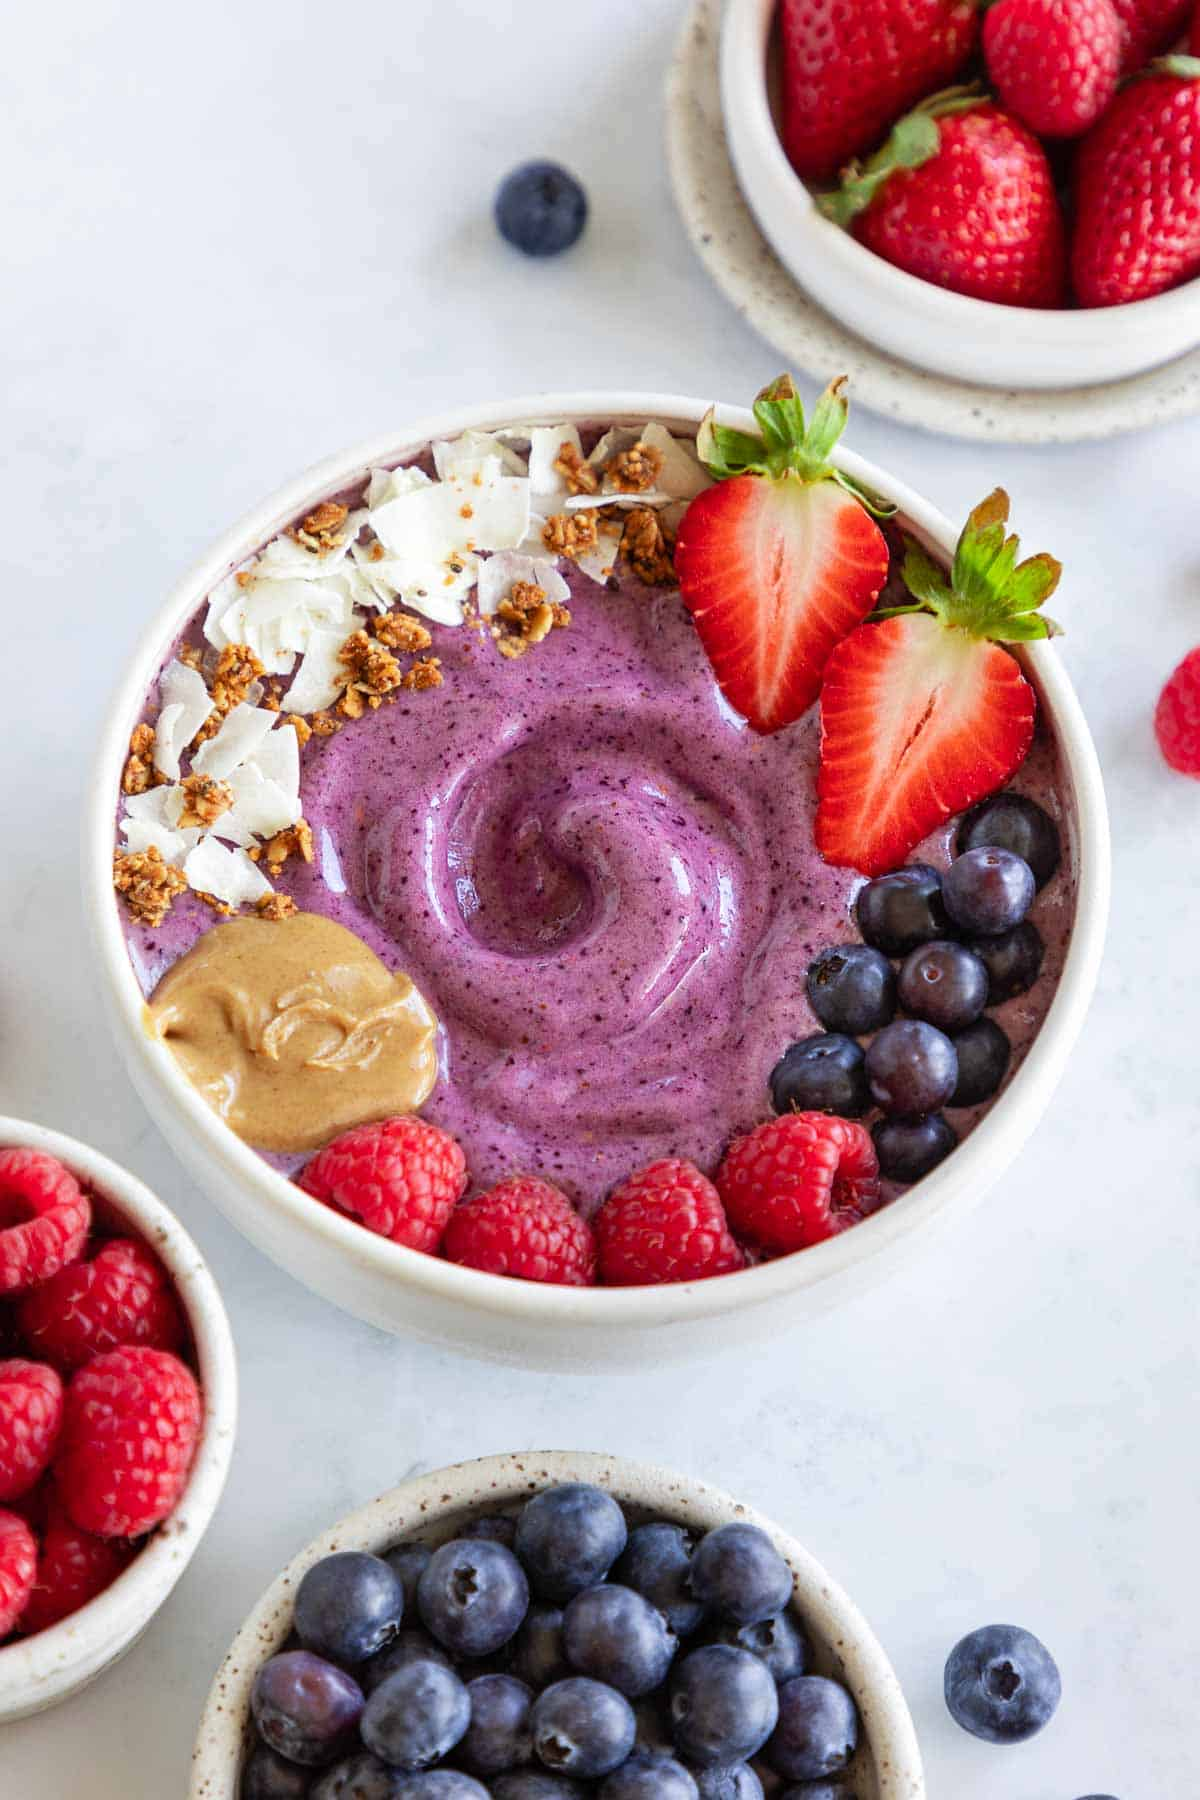 berry smoothie bowl with strawberries, blueberries, and raspberries